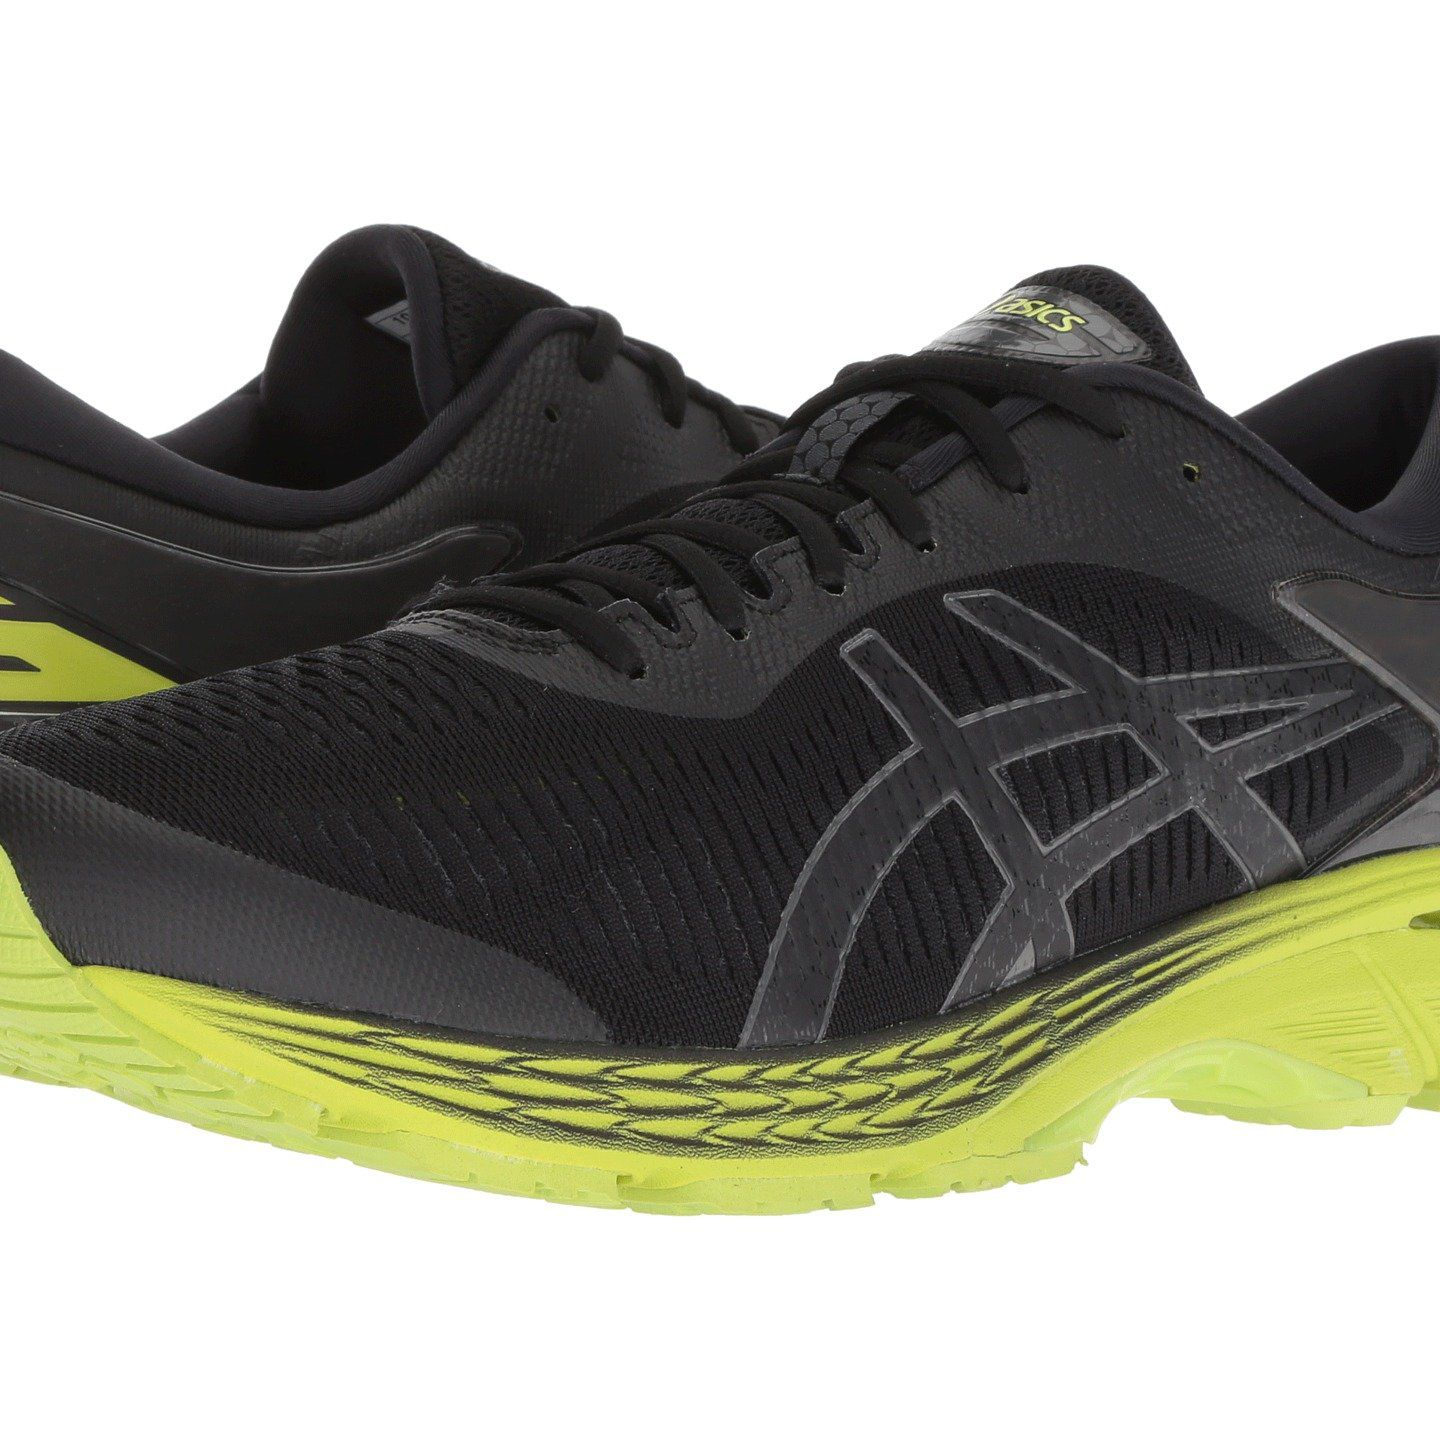 The 7 Best Running Shoes for Men With Flat Feet in 2020